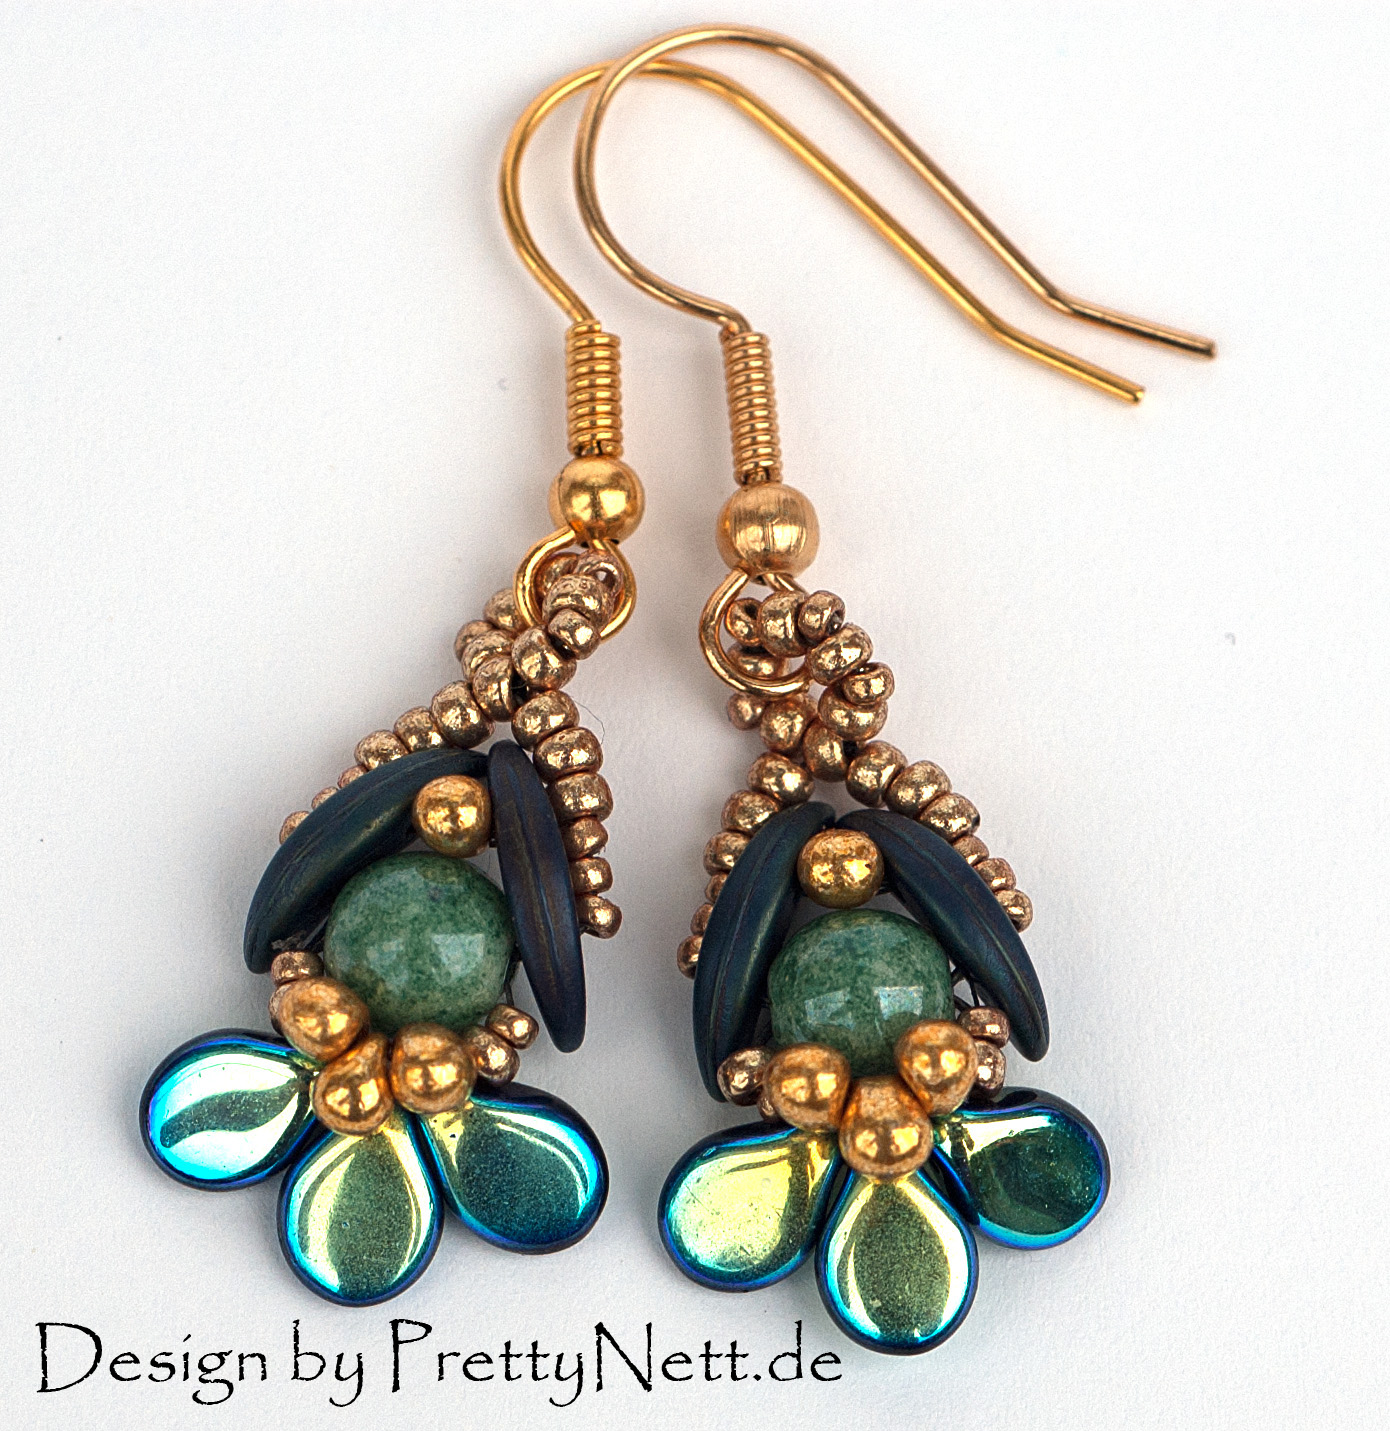 4 Pip Beaded Earrings Tutorials to Try! - The Beading Gem ...